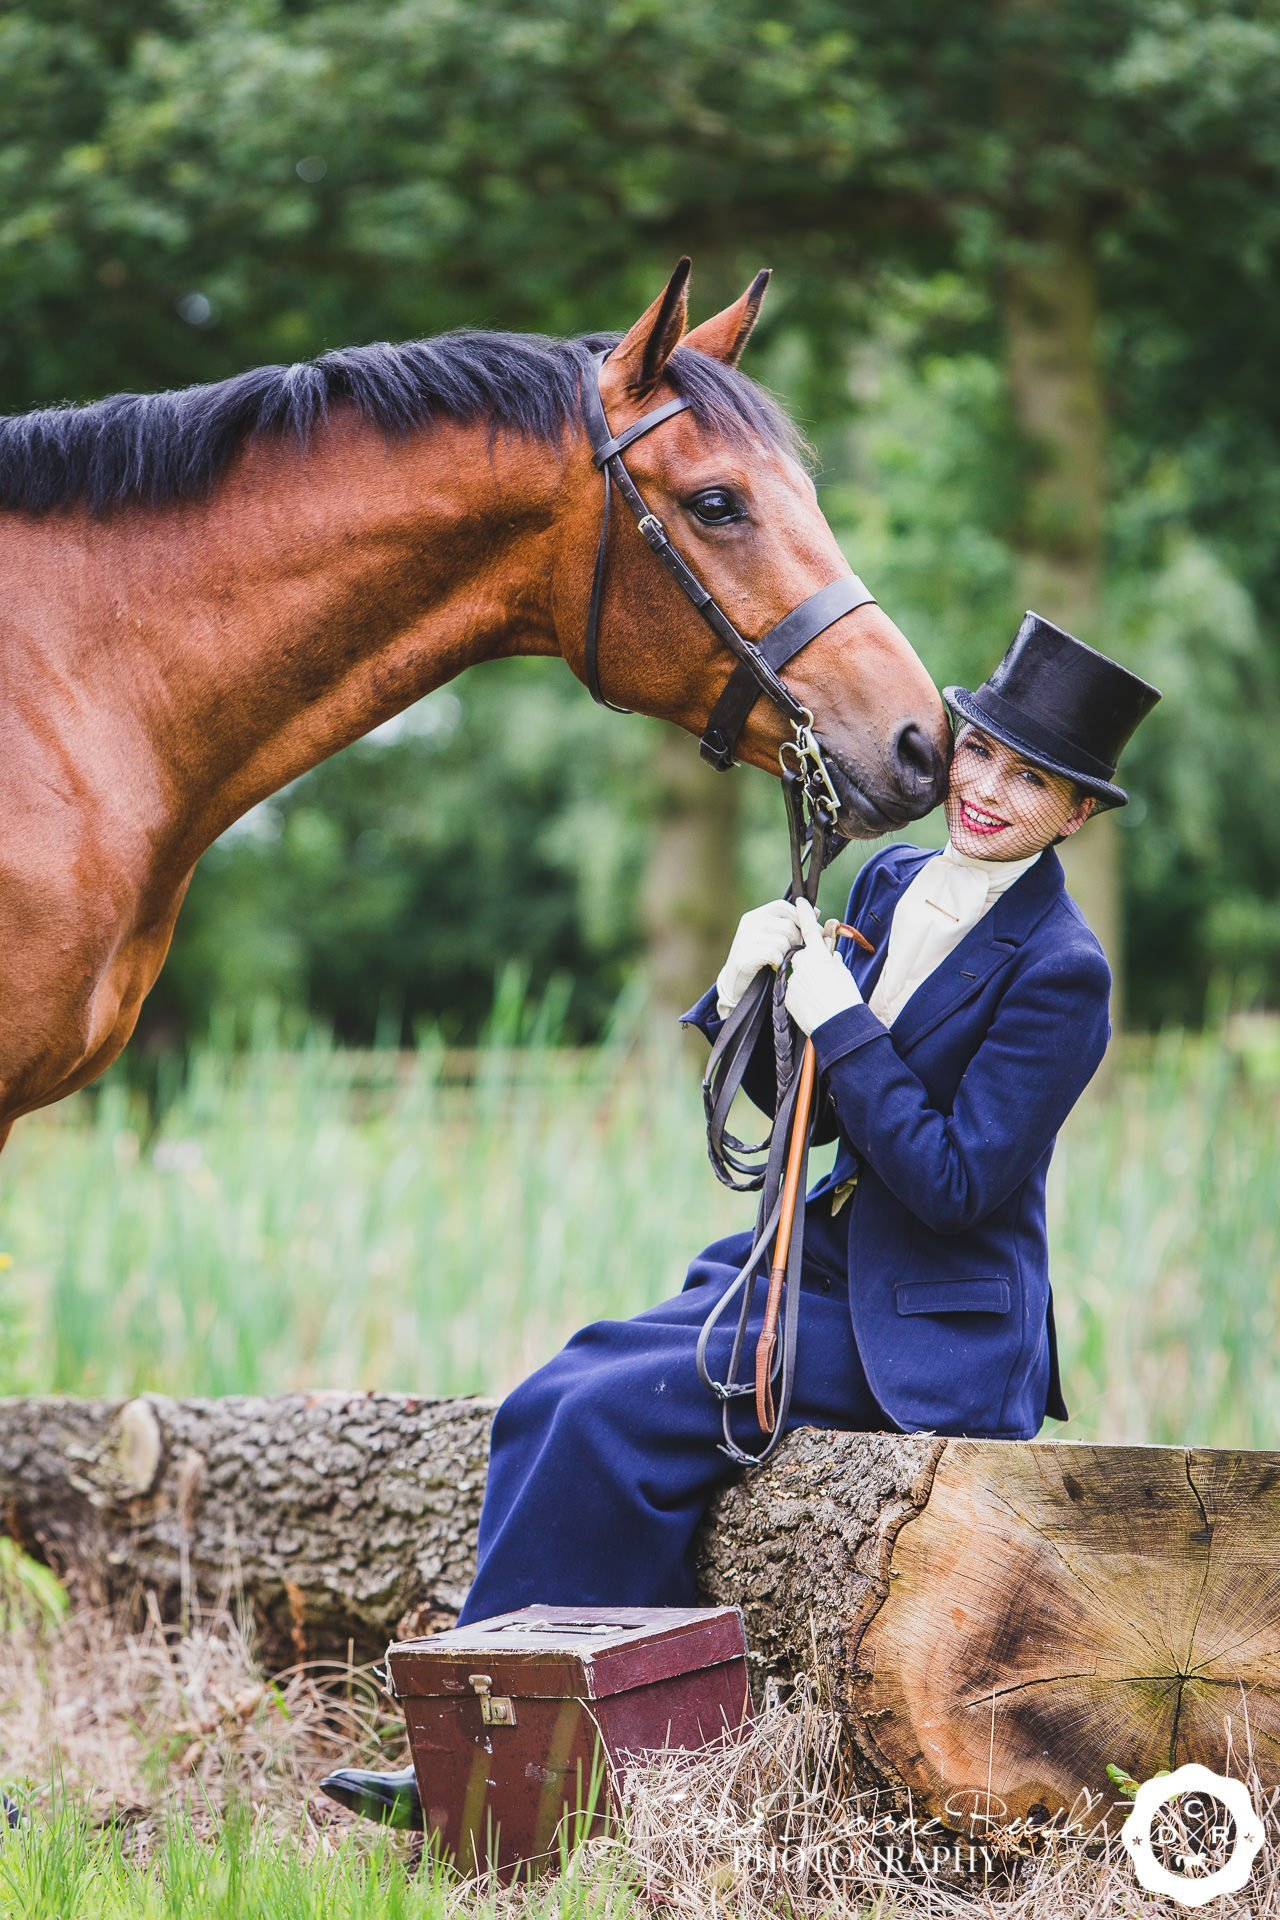 A girl in a vintage habit on a horse and rider photo shoot